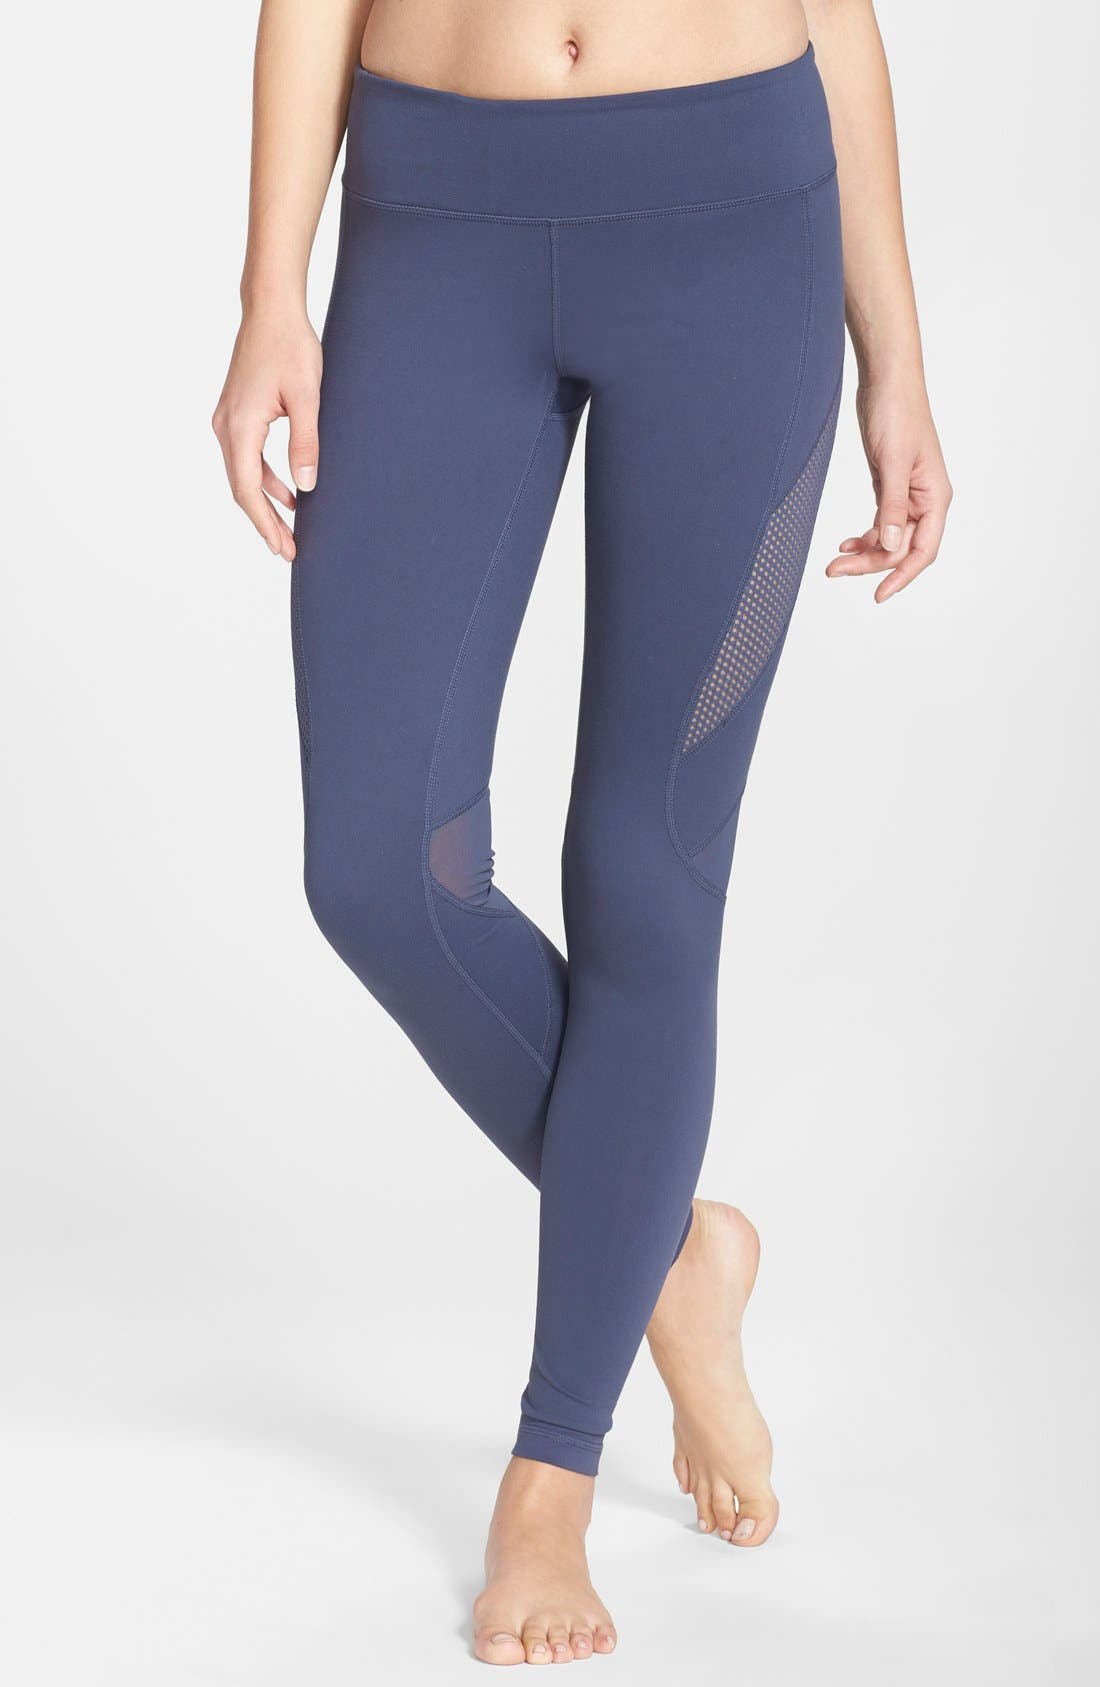 Alternate Image 1 Selected - Zella 'Optic Mesh' Leggings